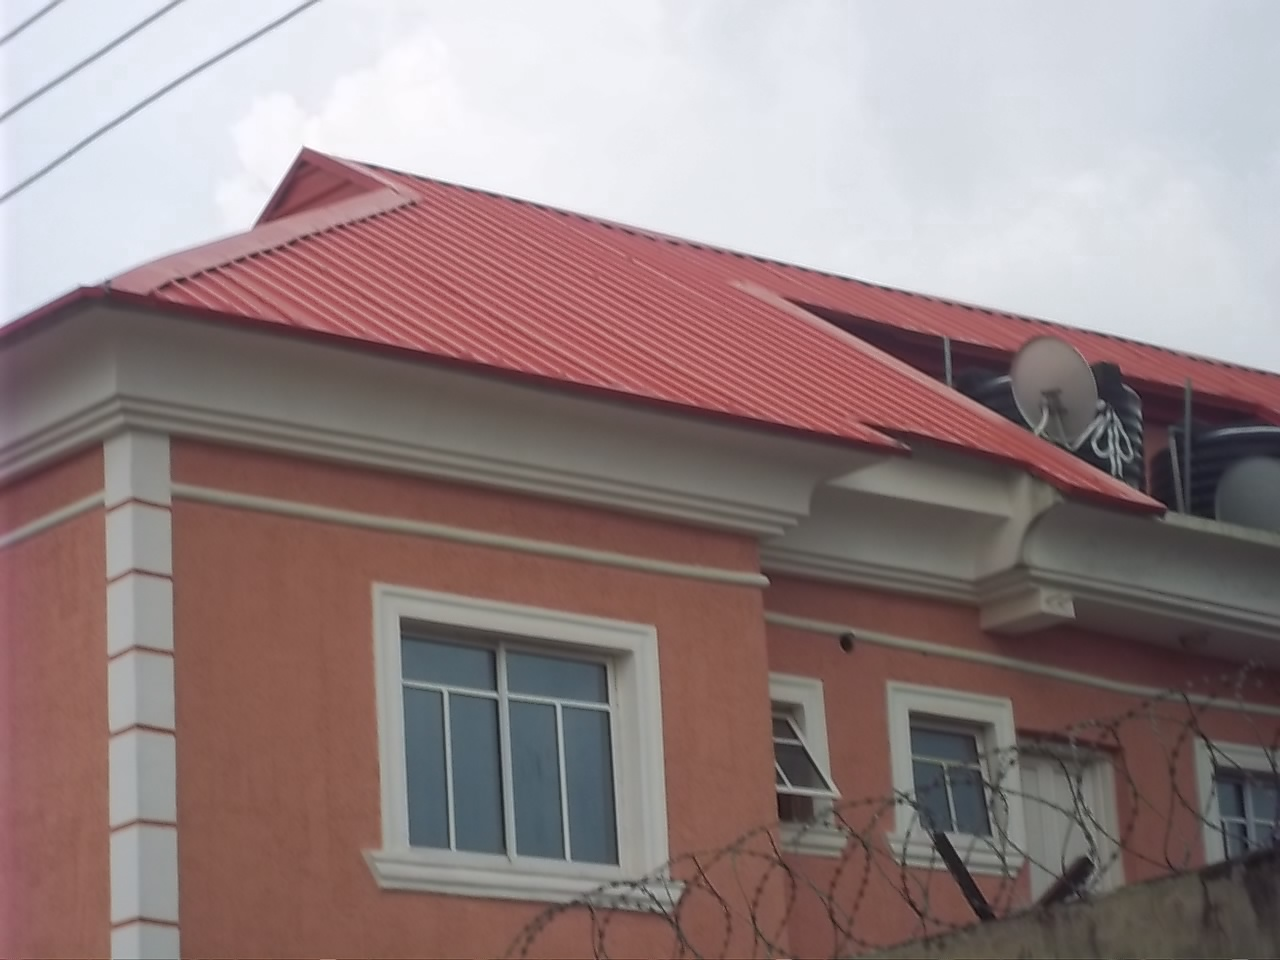 Nigeria parapet for house and windows pop design for Parapet roof design pictures